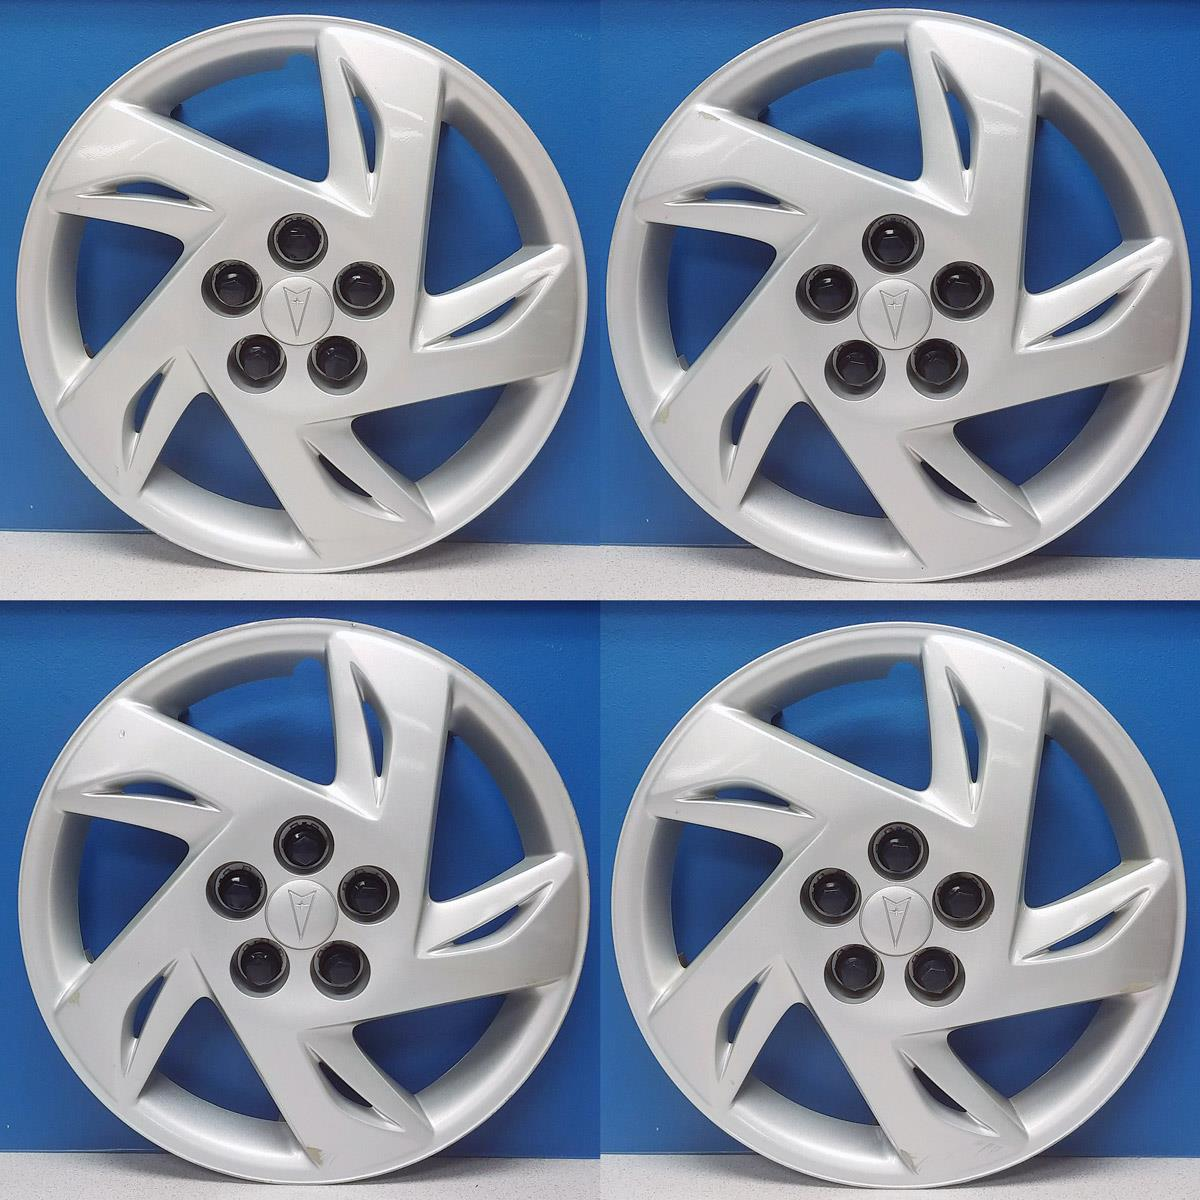 hight resolution of details about 2000 2002 pontiac sunfire 5127b 15 hubcaps wheel covers gm 09593211 sale set